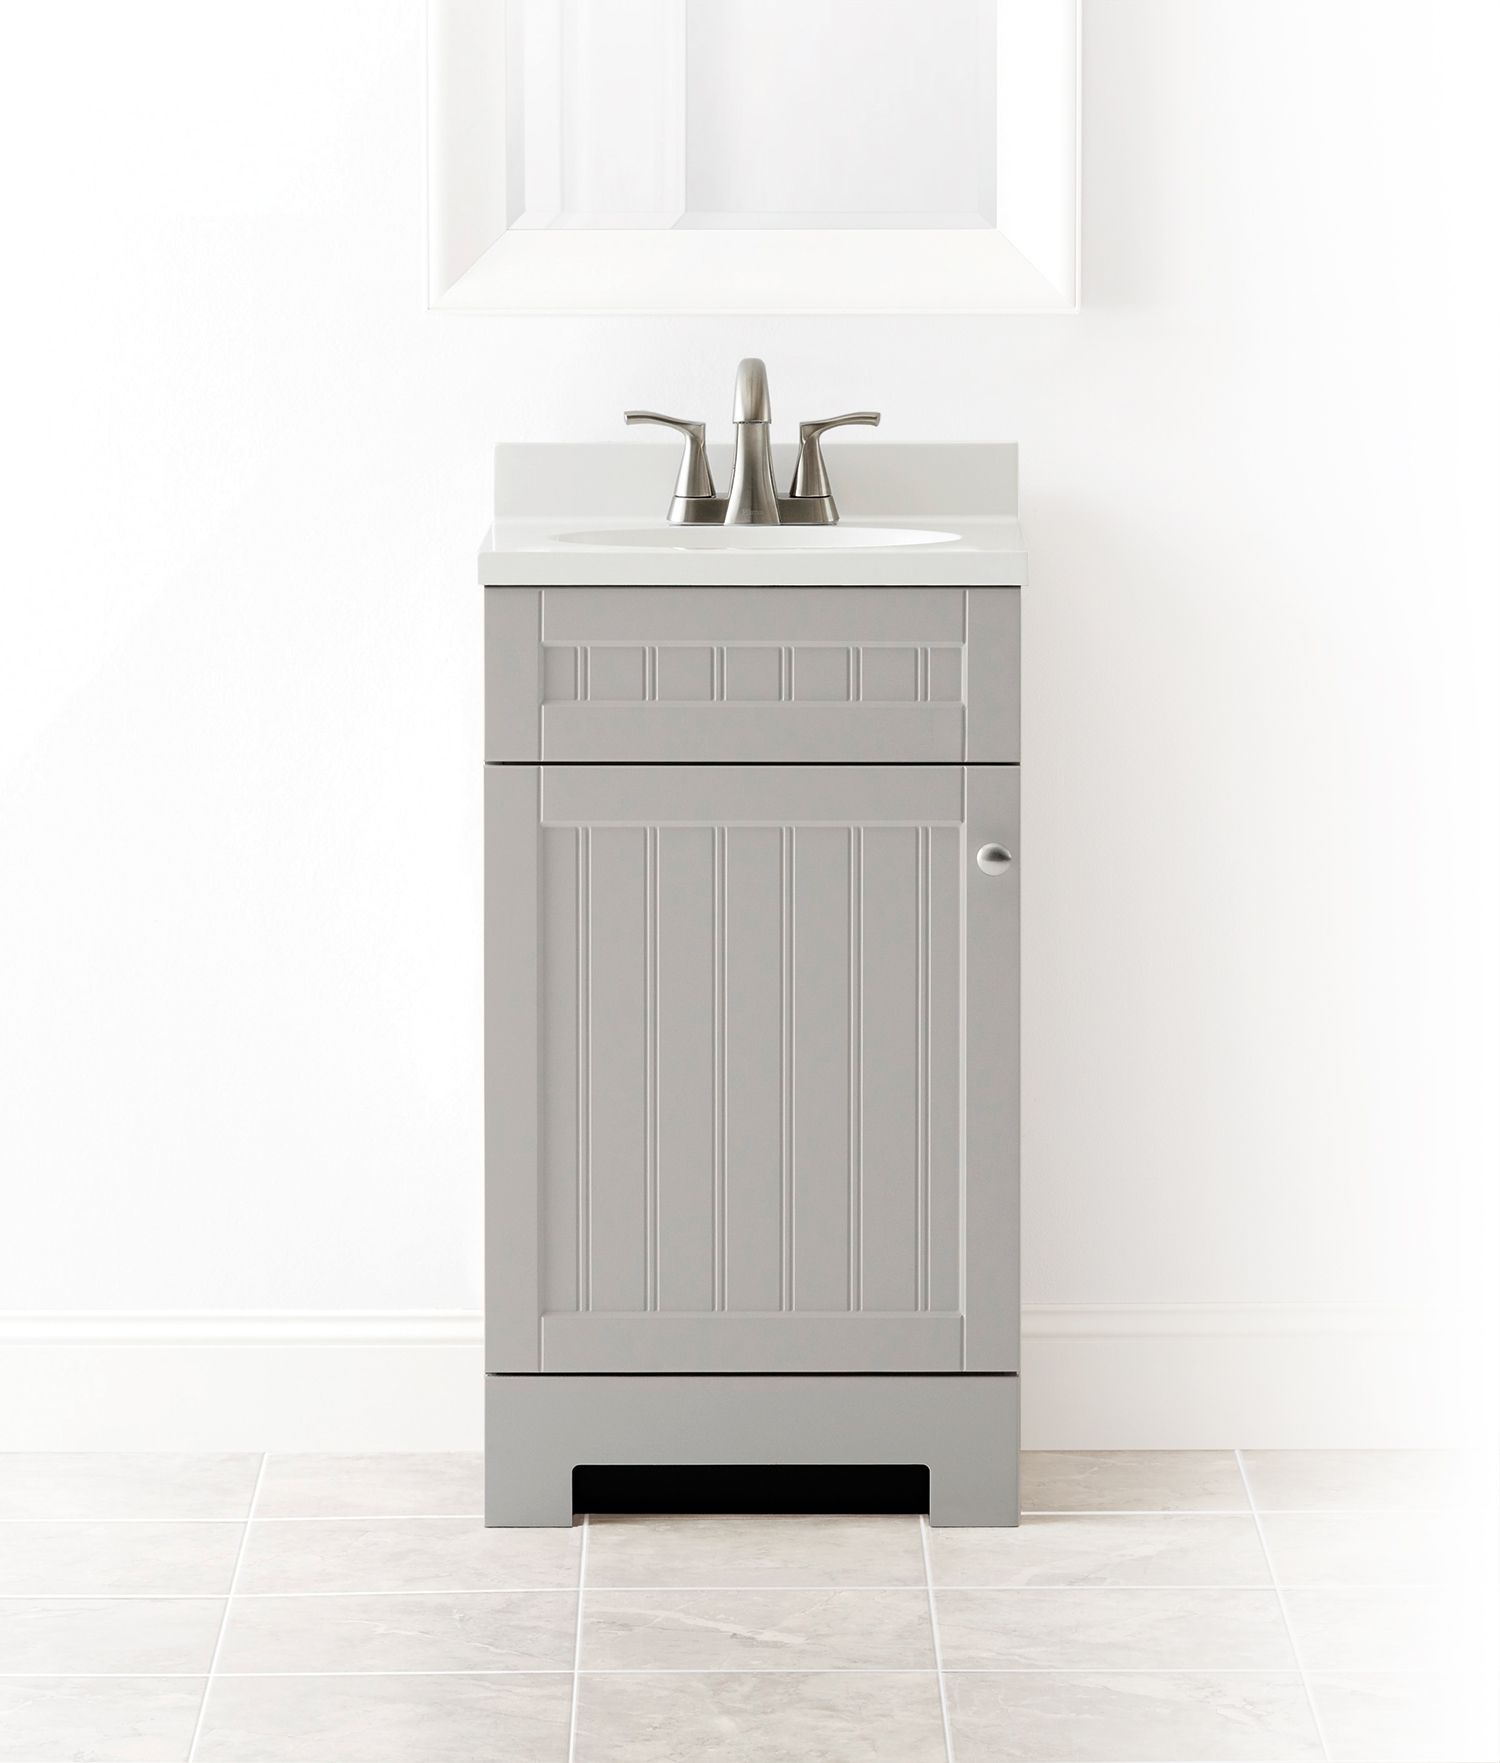 Admirable Style Selections Ellenbee 18 5 In Gray Single Sink Bathroom Interior Design Ideas Gentotryabchikinfo